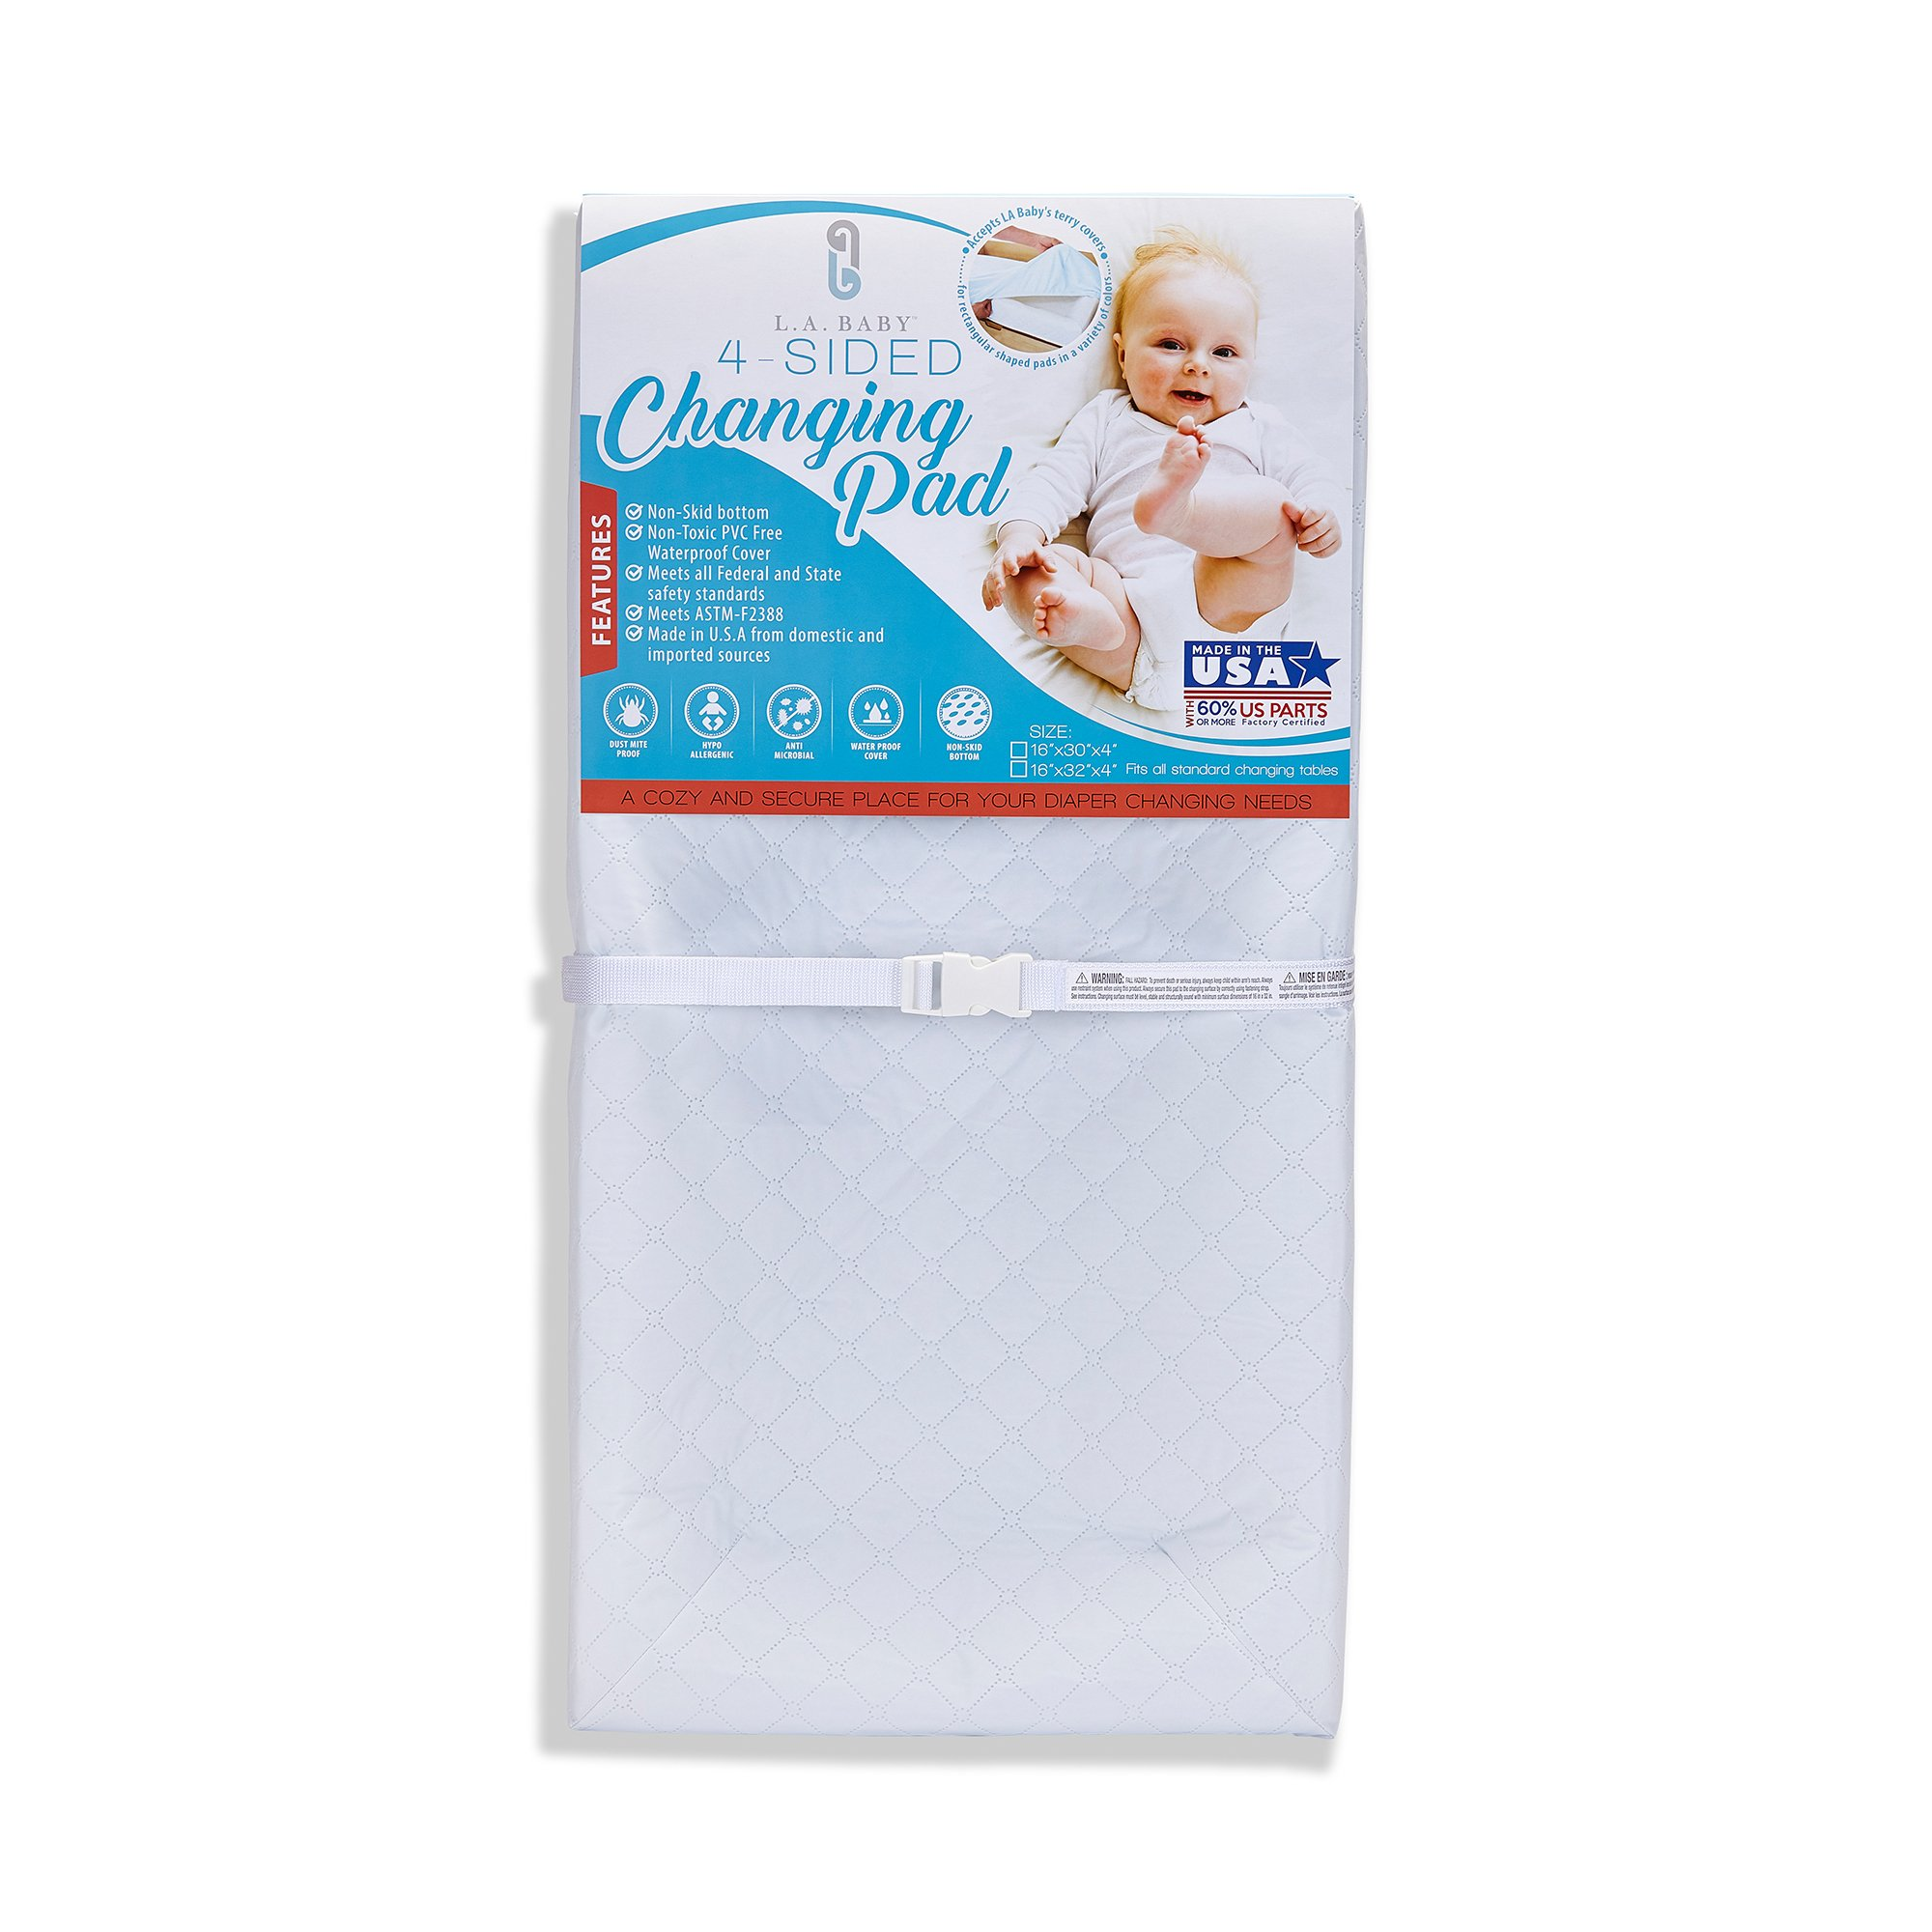 LA Baby Waterproof 4 Sided Changing Pad, 32'' - Made in USA. Easy to Clean W Non-Skid Bottom, Safety Strap, Fits All Standard Changing Tables/Dresser Tops for Best Infant Diaper Change